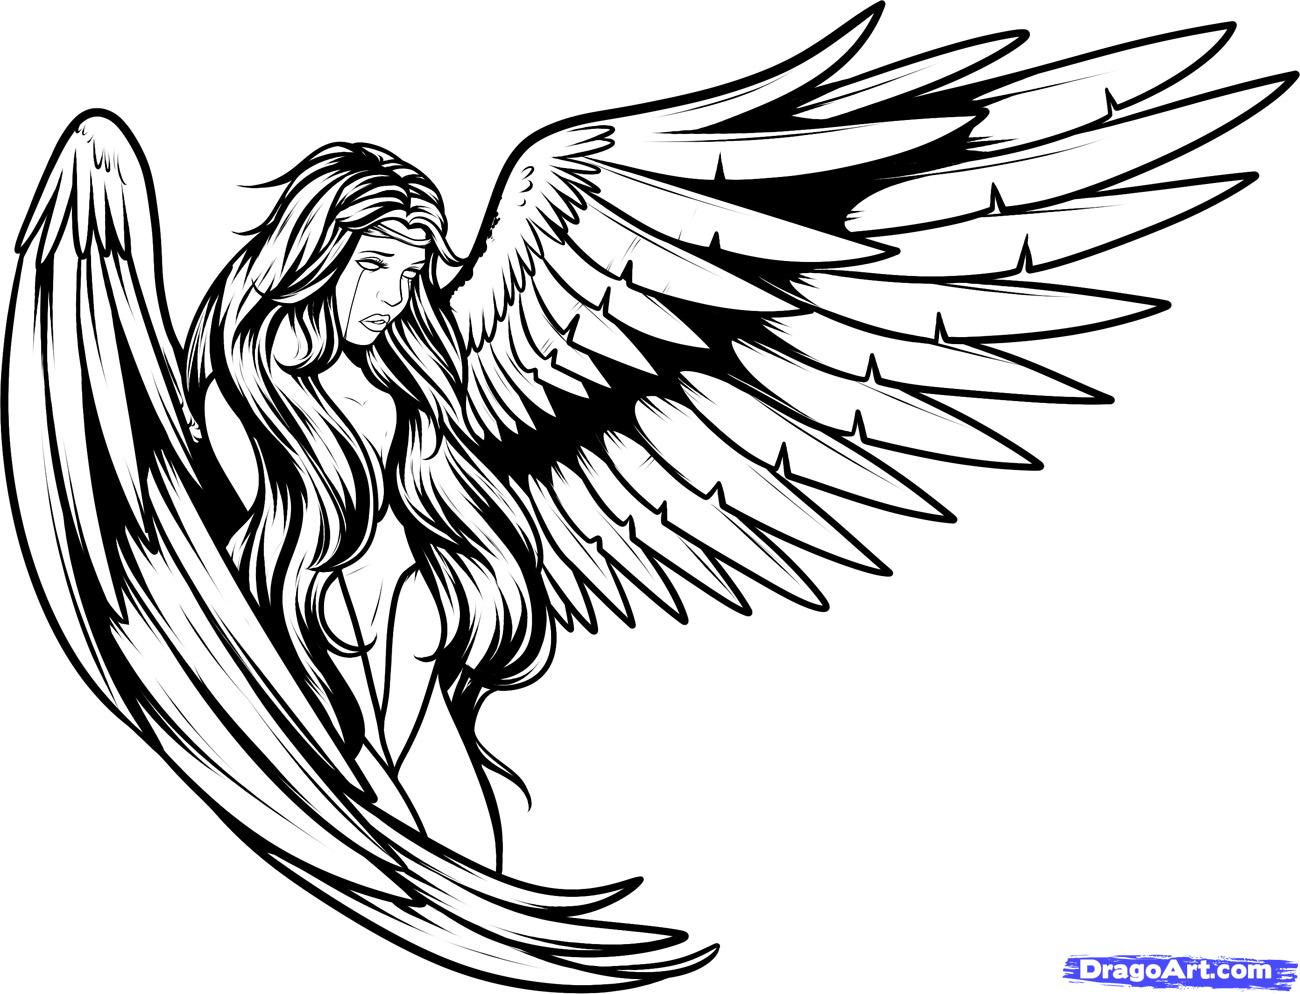 warrior 20angel besides 25 justin bieber likewise angel six winged color US WU75976AA also 37d12f2eb9389b502a47ca8b8535e5dde6116eaa moreover ALBERT ICELAND FINAN 52846f together with Outline Crying Angel Tattoo Design besides Epic War Wallpapers likewise Anime Mouths by CandySlush further Cool Bull Devil Wallpaper Android besides laser deck template v0 2 additionally latest cb 20150301211724   path prefix protagonist. on a guy with sword in the bible coloring pages